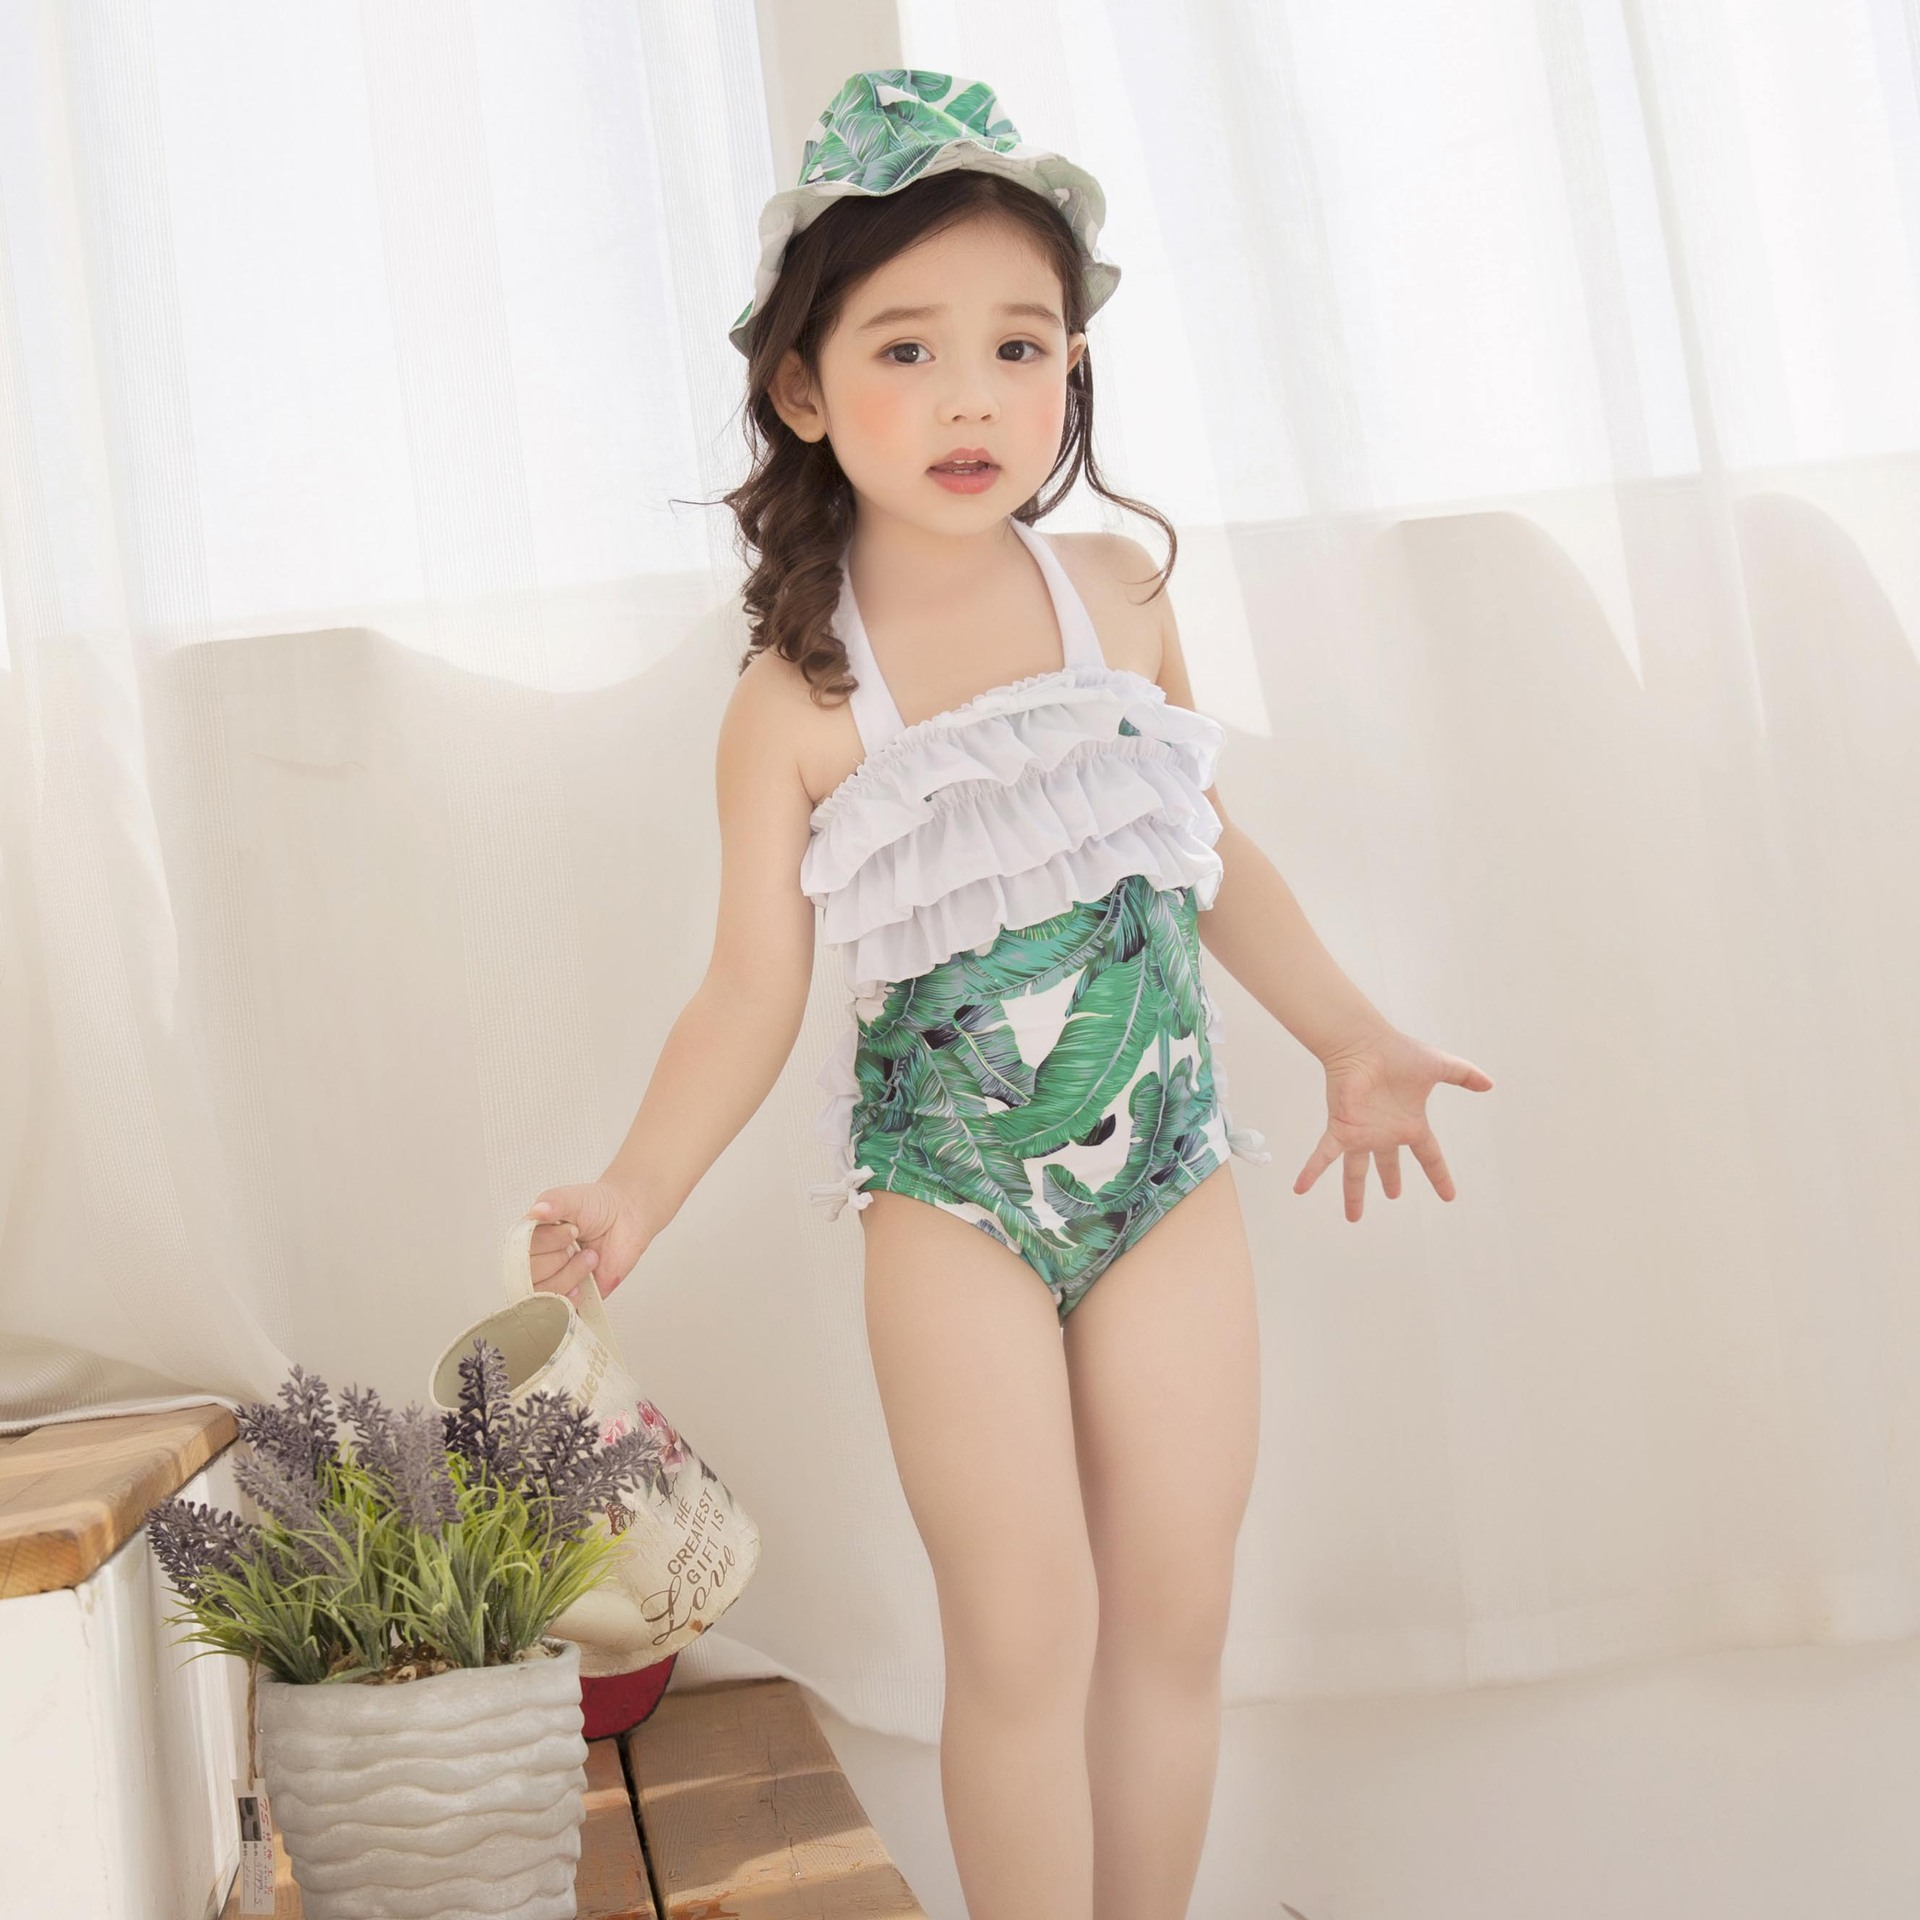 Kids Swimwear For Girls Baby Girl Swimming Suit Child Bikini Bathing 2017 New Children Print Retro Biquinis Badeanzug Zwembroek gaude